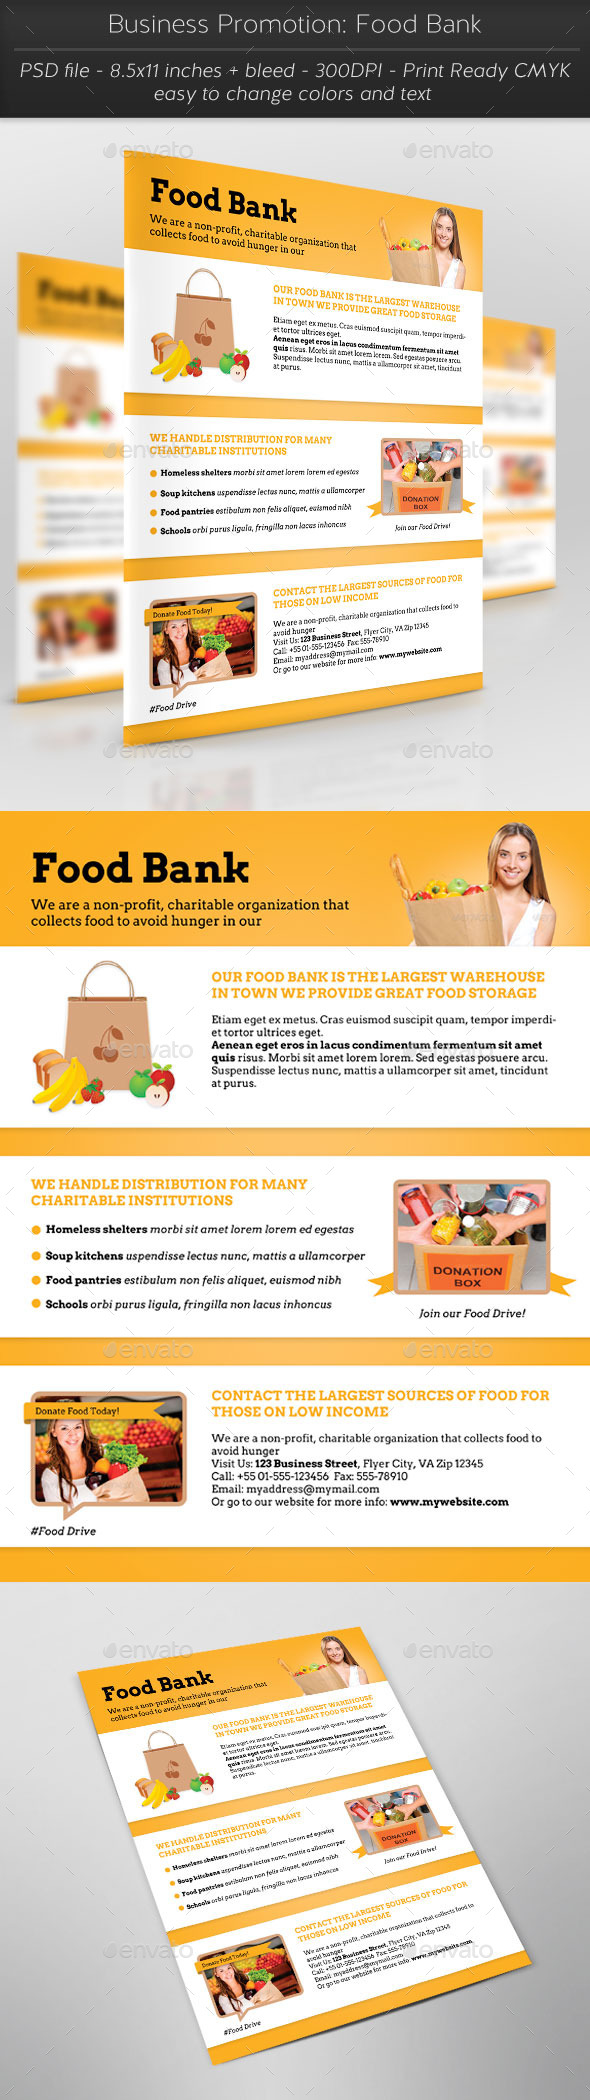 Business Promotion Food Bank